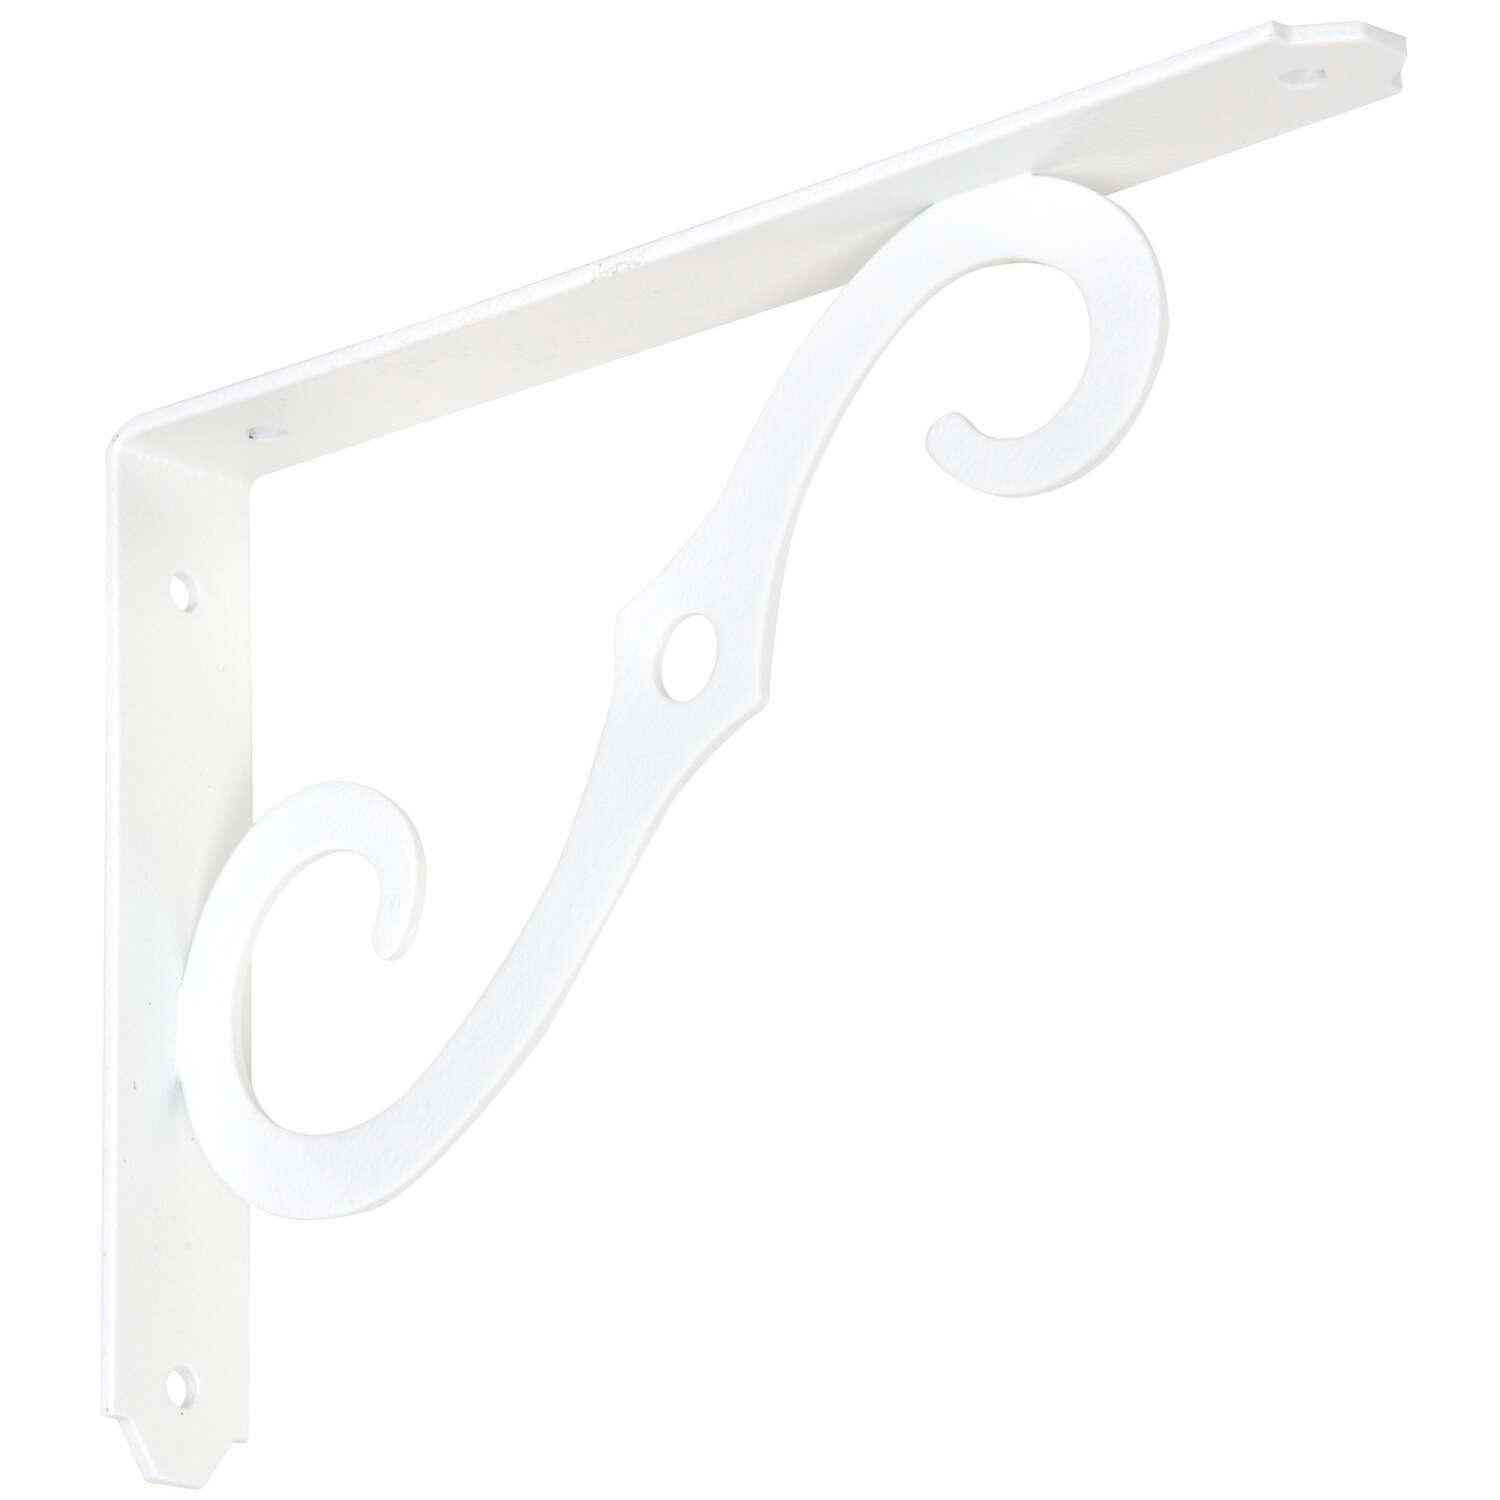 National Hardware White Steel Shelf Bracket 0.94 in. L 80 lb.